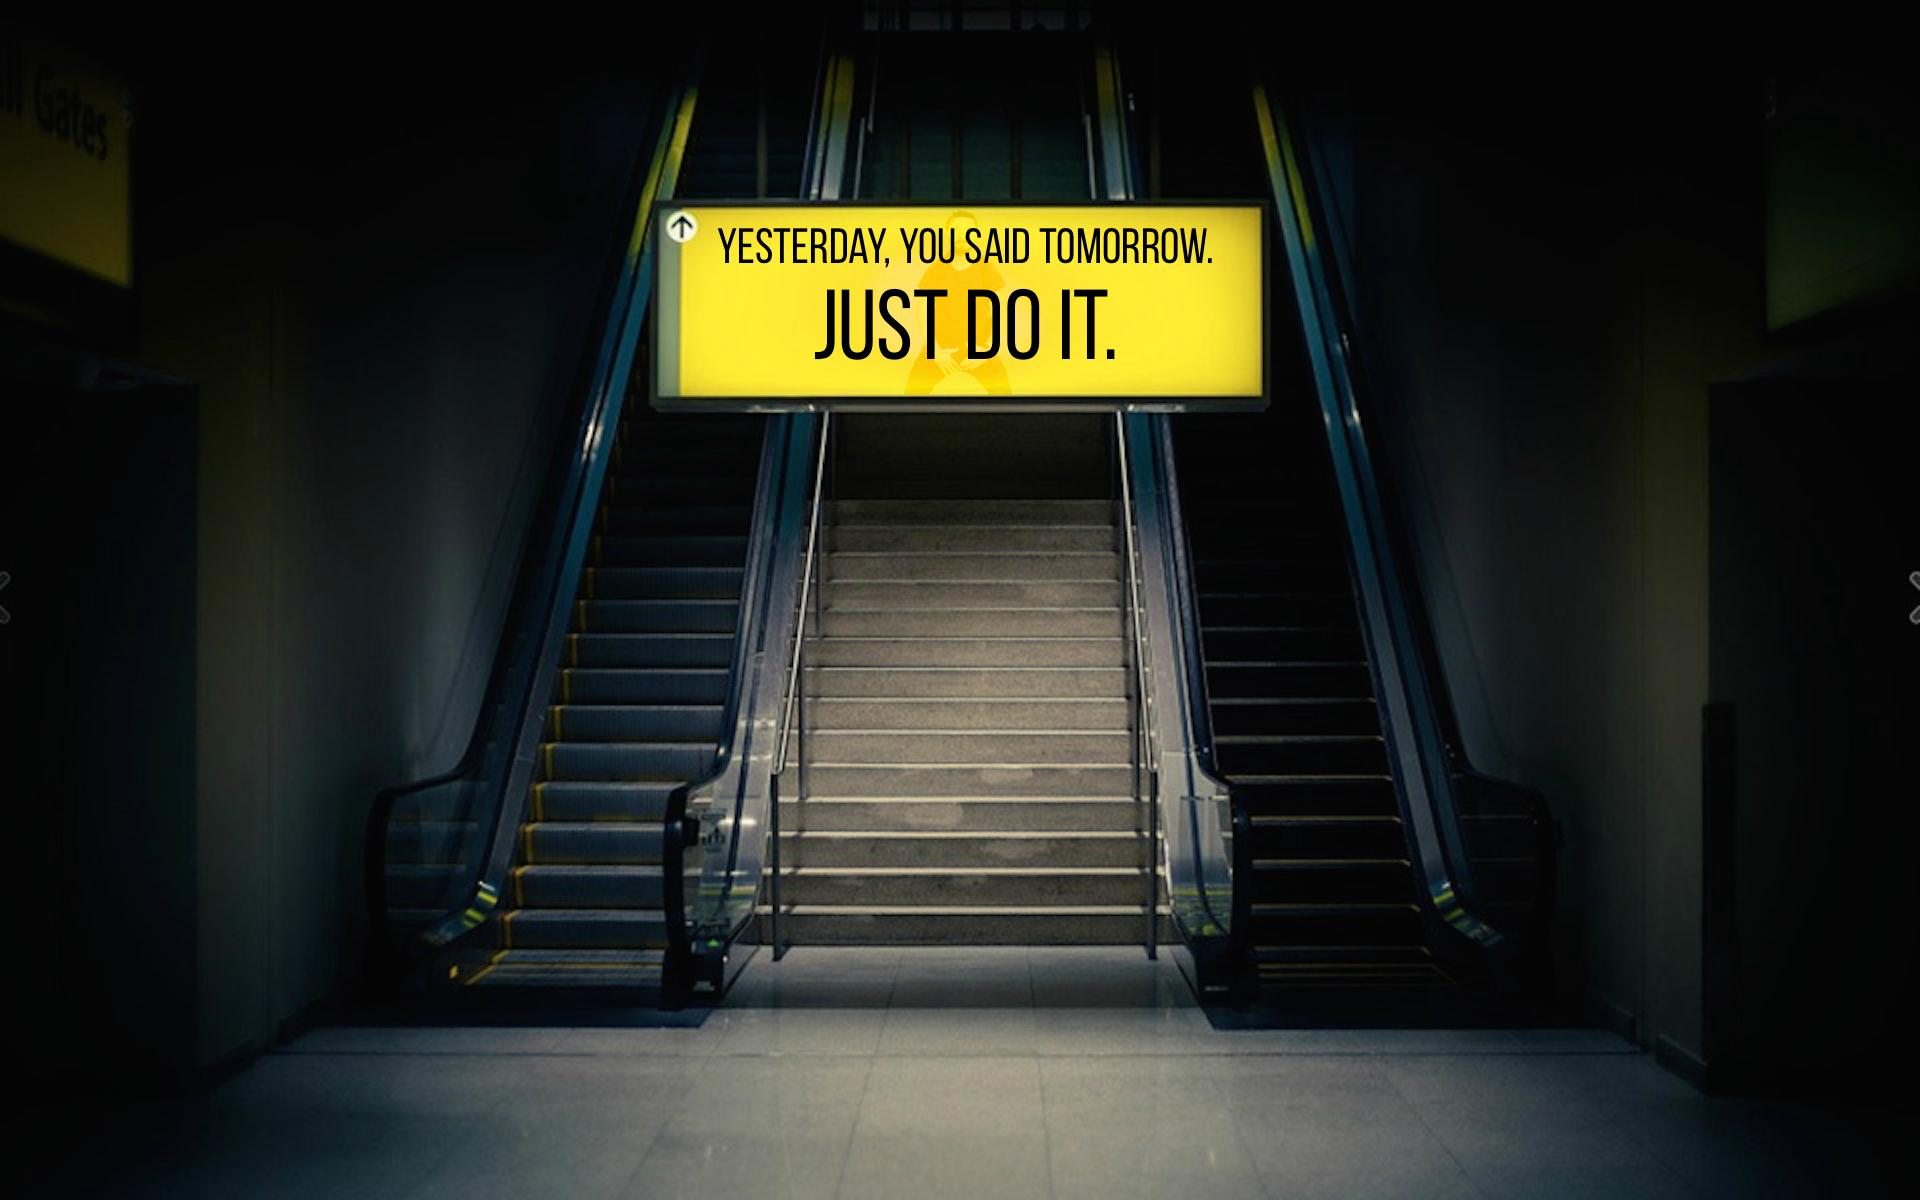 Just Do It Wallpaper 025